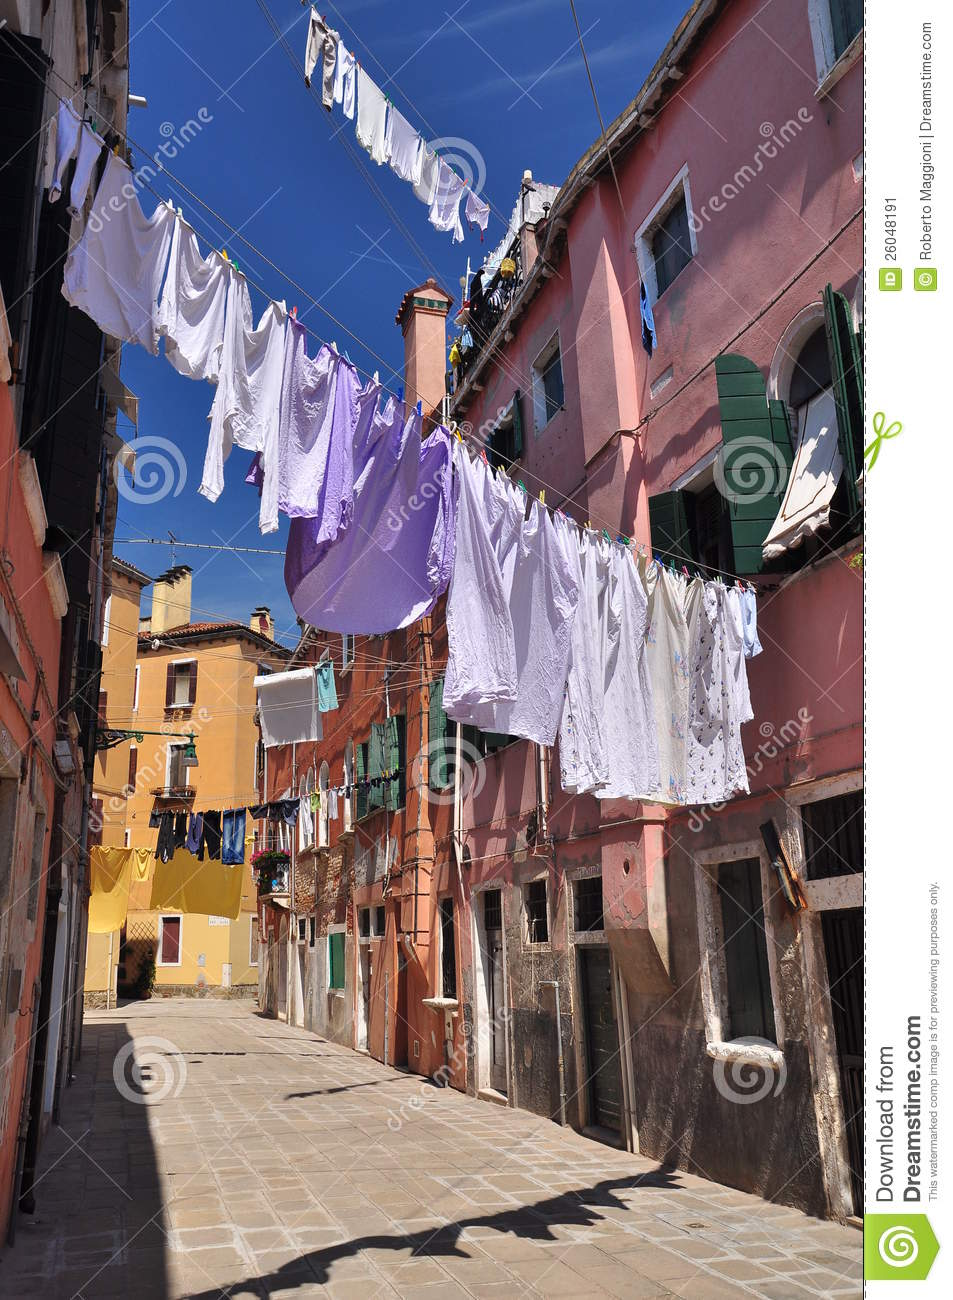 Stock Image Clothes Hanging Above Alleys Venice Image26048191 on Traditional Southern Home House Plans